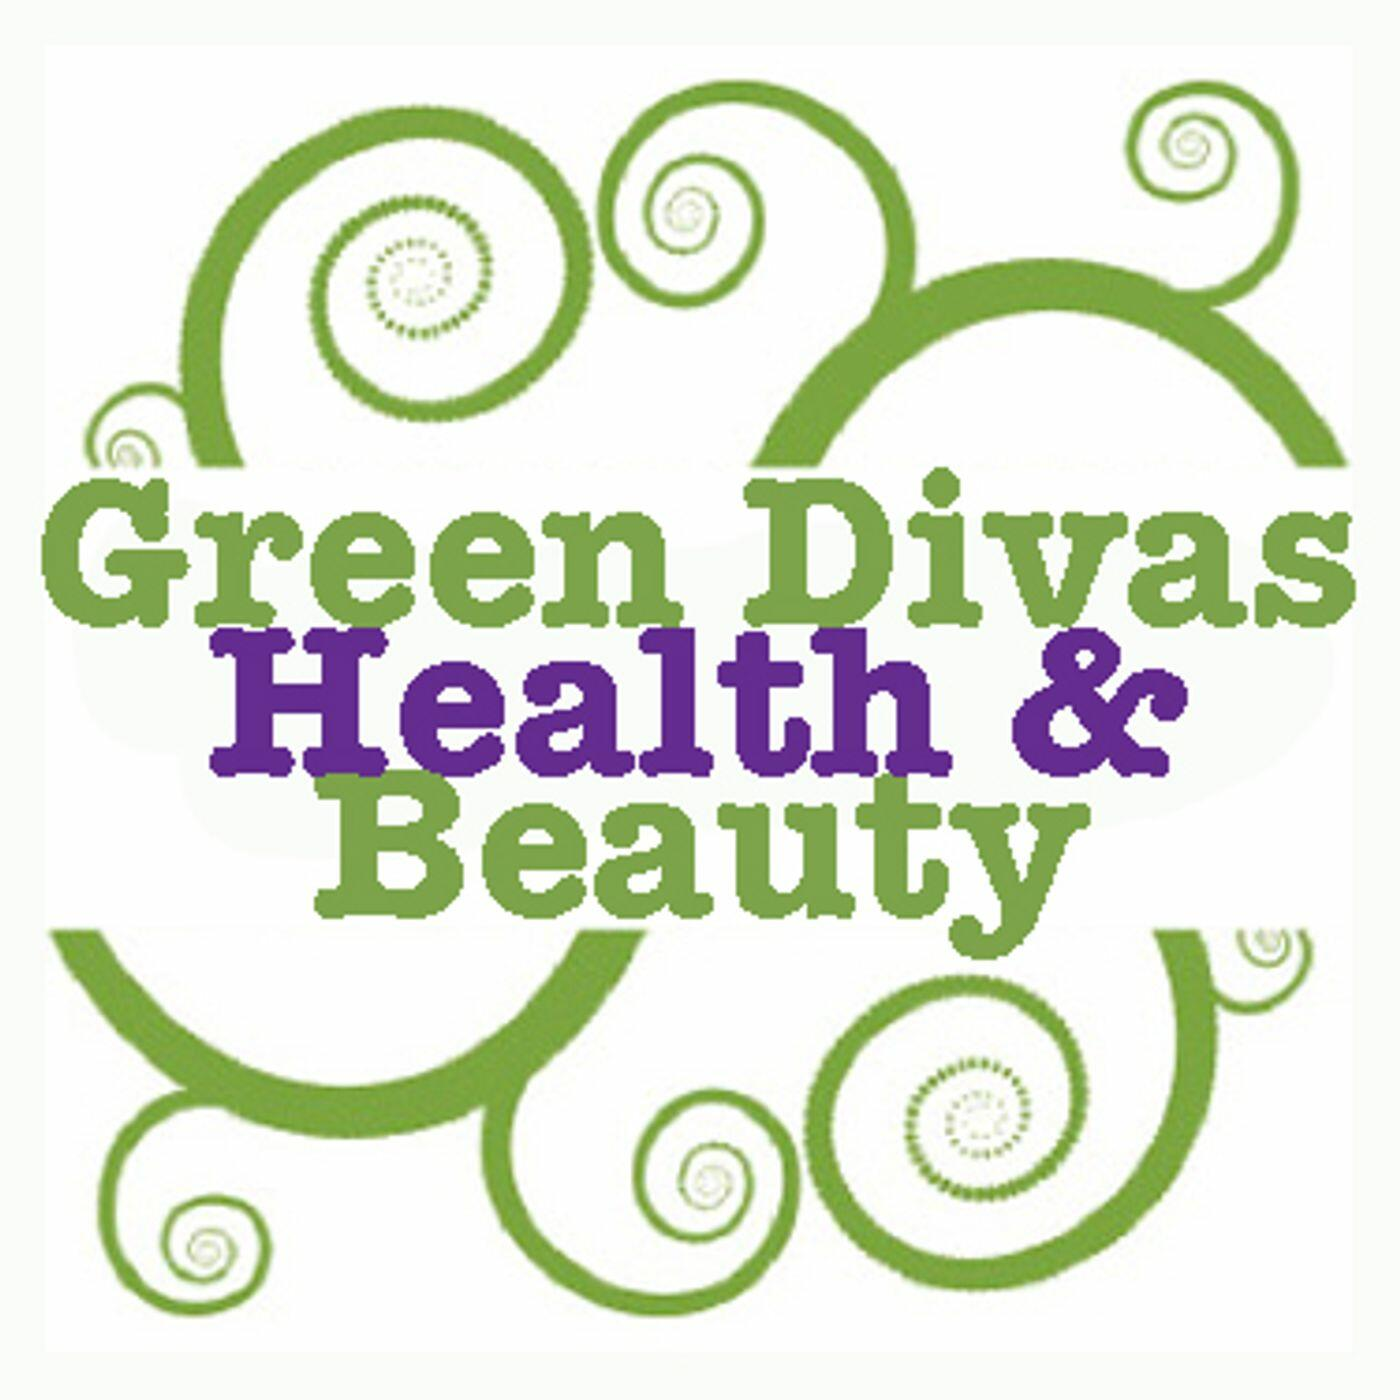 Green Divas Health & Beauty